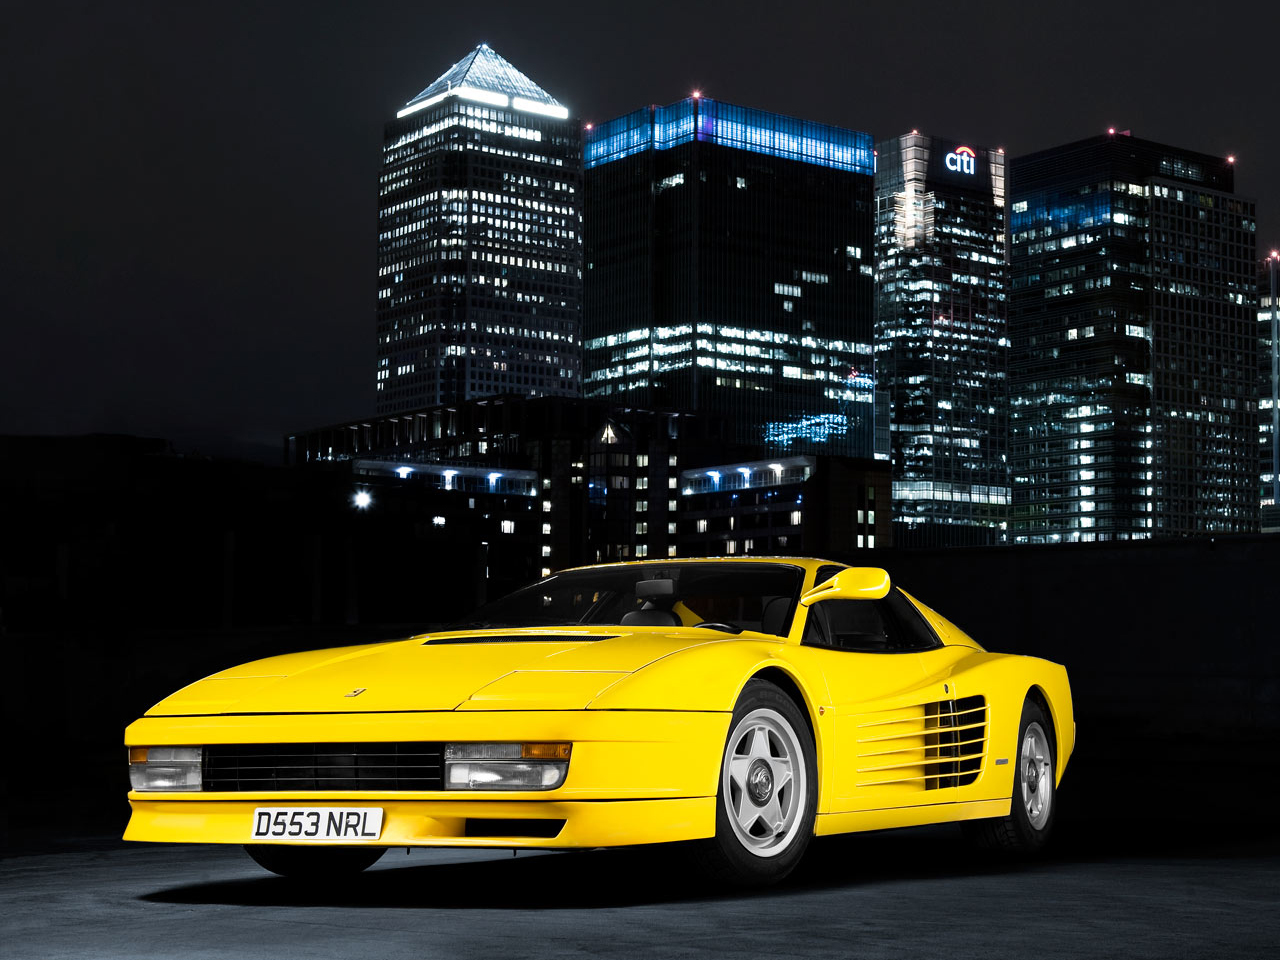 Today You Can Find Testarossa For Less Than $60 000, While Cars In Better  Condition And With Lower Mileage May Cost Two Times More.